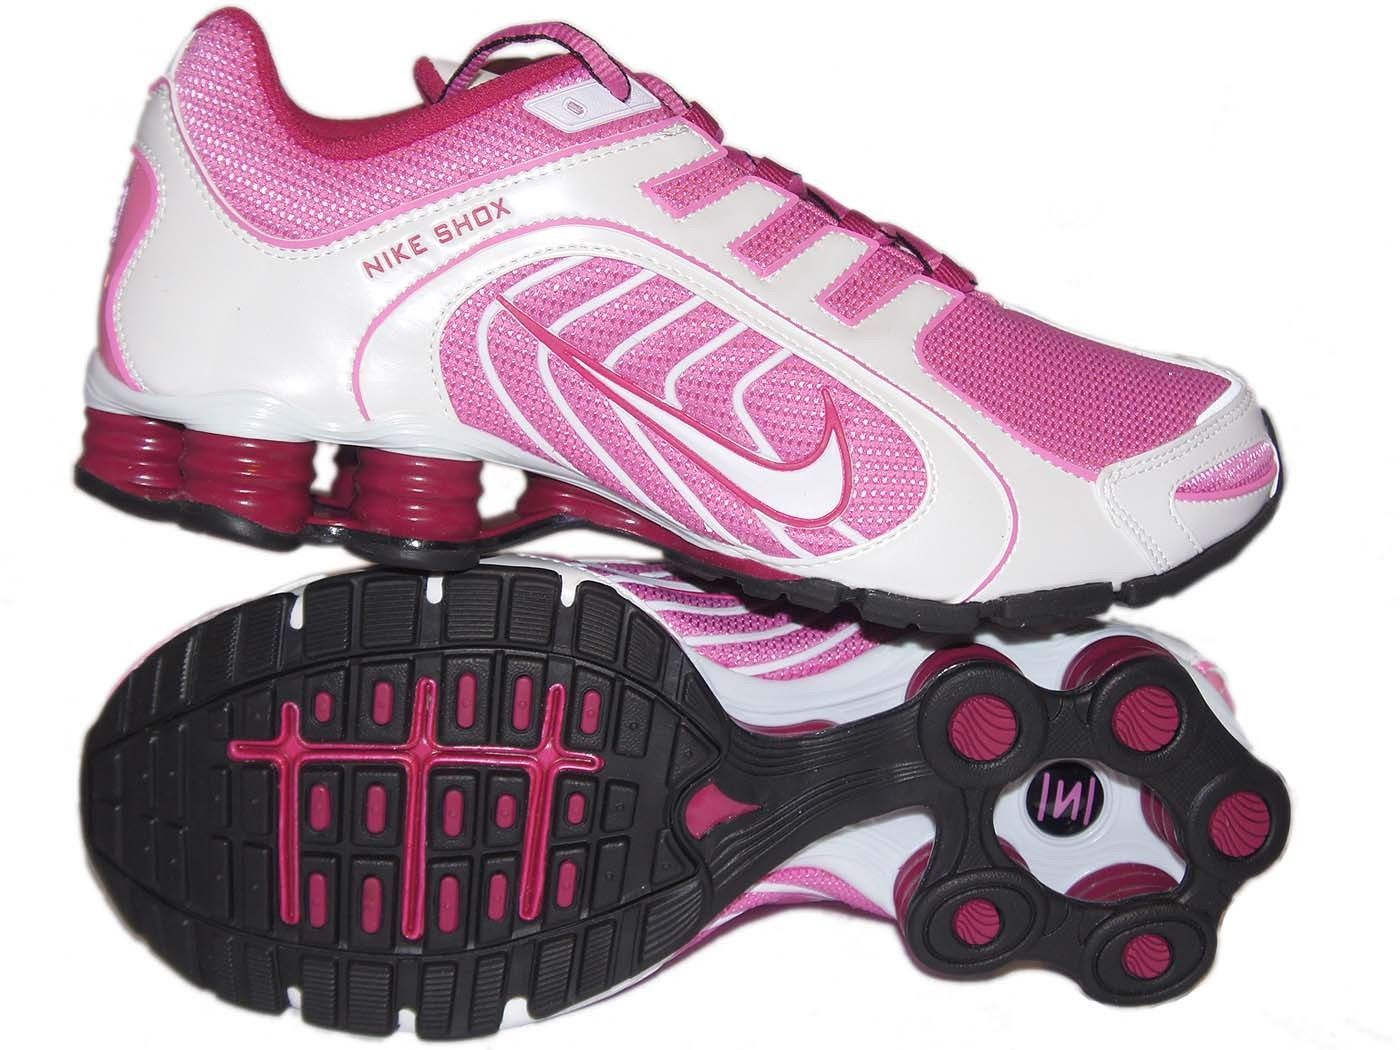 a8bec3cbf997bc ... ireland womens nike shox navina size 9 red violet white black bright  pink running cdee8 efd5c